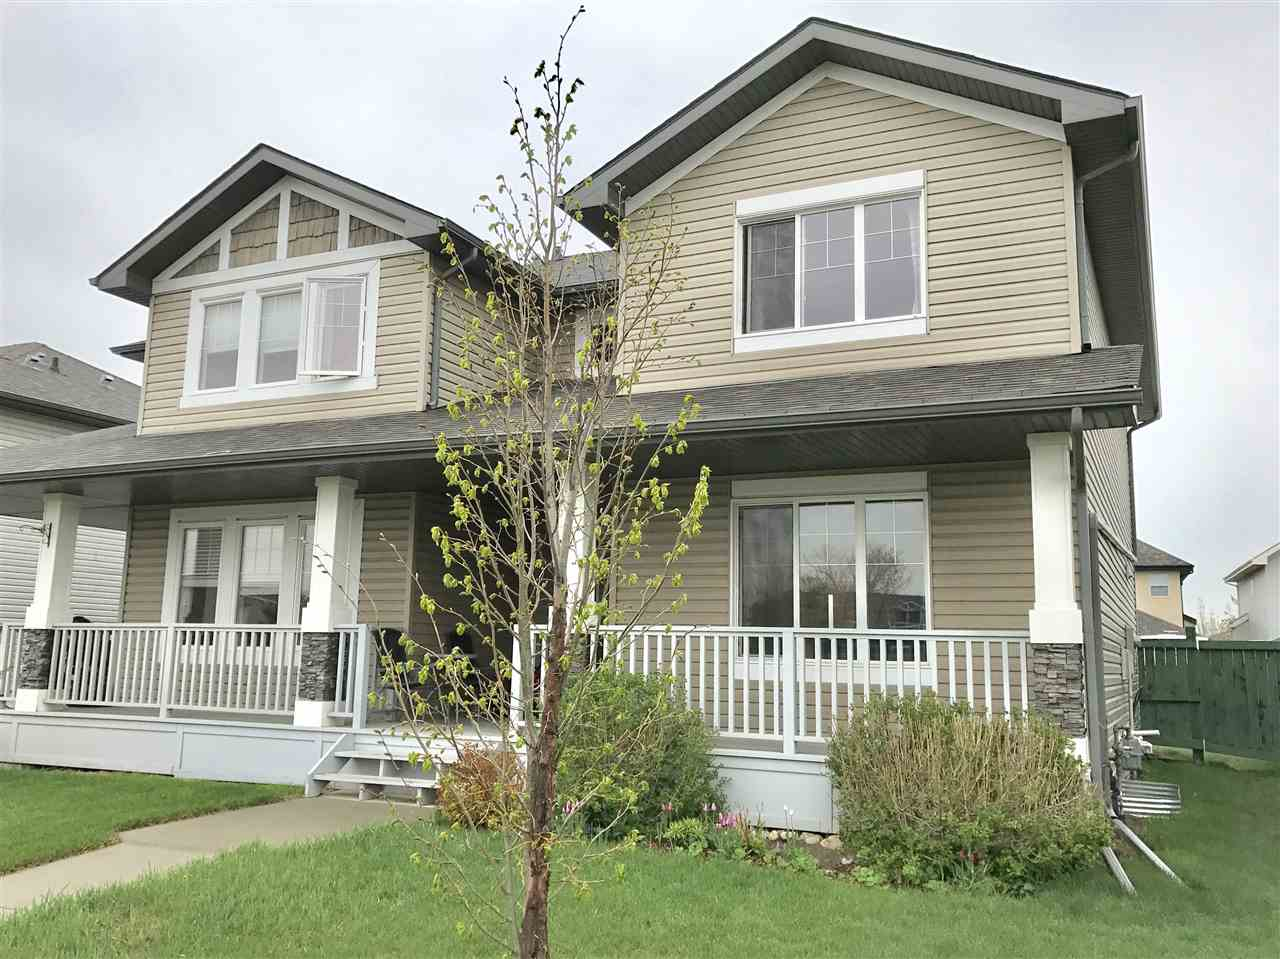 NO CONDO FEES HERE! Step up onto your front verandah and enter into the foyer of this spacious fully finished home. The front living room has a cozy corner gas fireplace and large bright west facing window. The kitchen/dining room features a large island with raised eating bar, corner pantry and French door to the back deck. The main floor 2 pc bath completes this level. Upstairs you will find the huge master suite with full ensuite and walk in closet, Two other good sized bedrooms, laundry and main bathroom. The basement has been professionally finished with rec room, bedroom, storage room and a spa like bath with double tile surround shower. The yard is fenced and has a concrete pad for your future double garage. There is a park across the street as well as walking trails, public transportation, schools, shopping all within walking distance. This home is in a great family community and will not last long so check it out today!